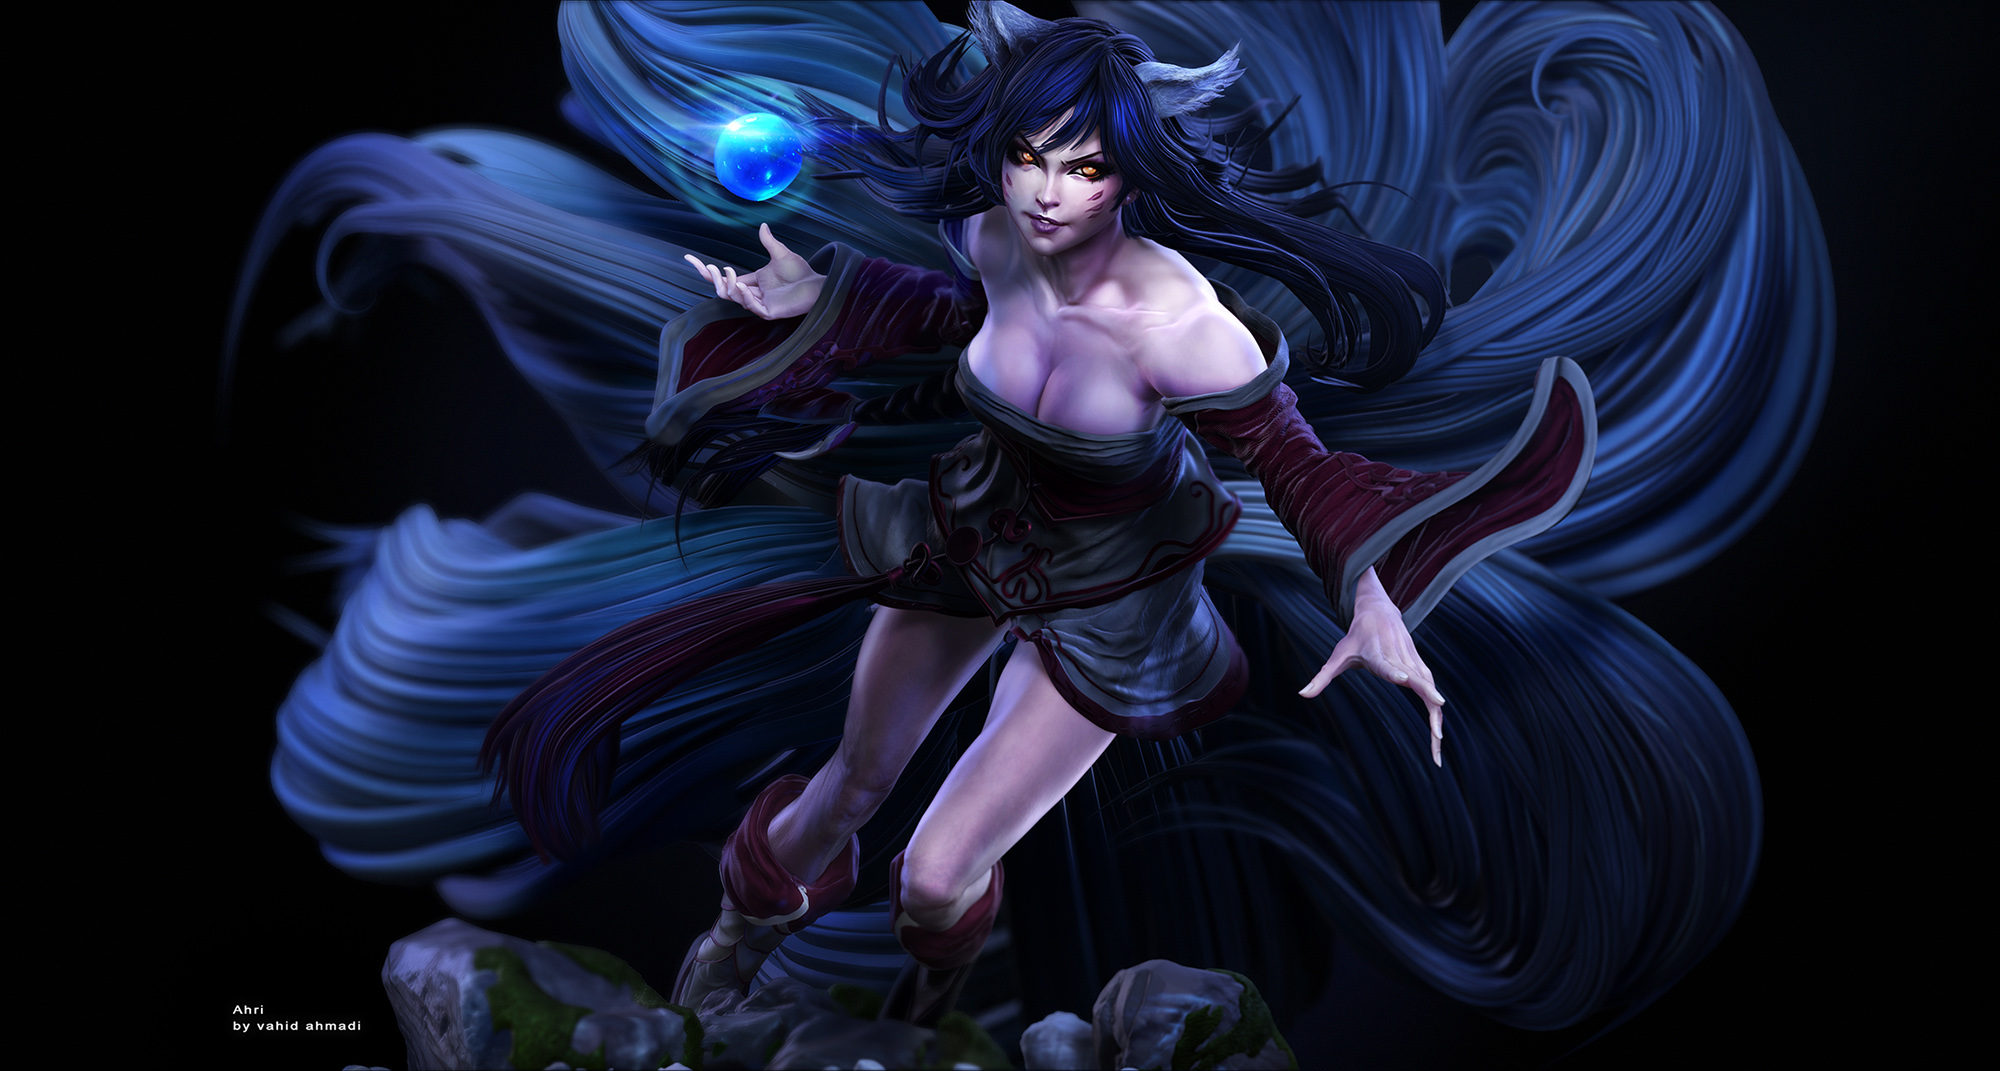 ahri league of legends  by vahid ahmadi ver1.jpg